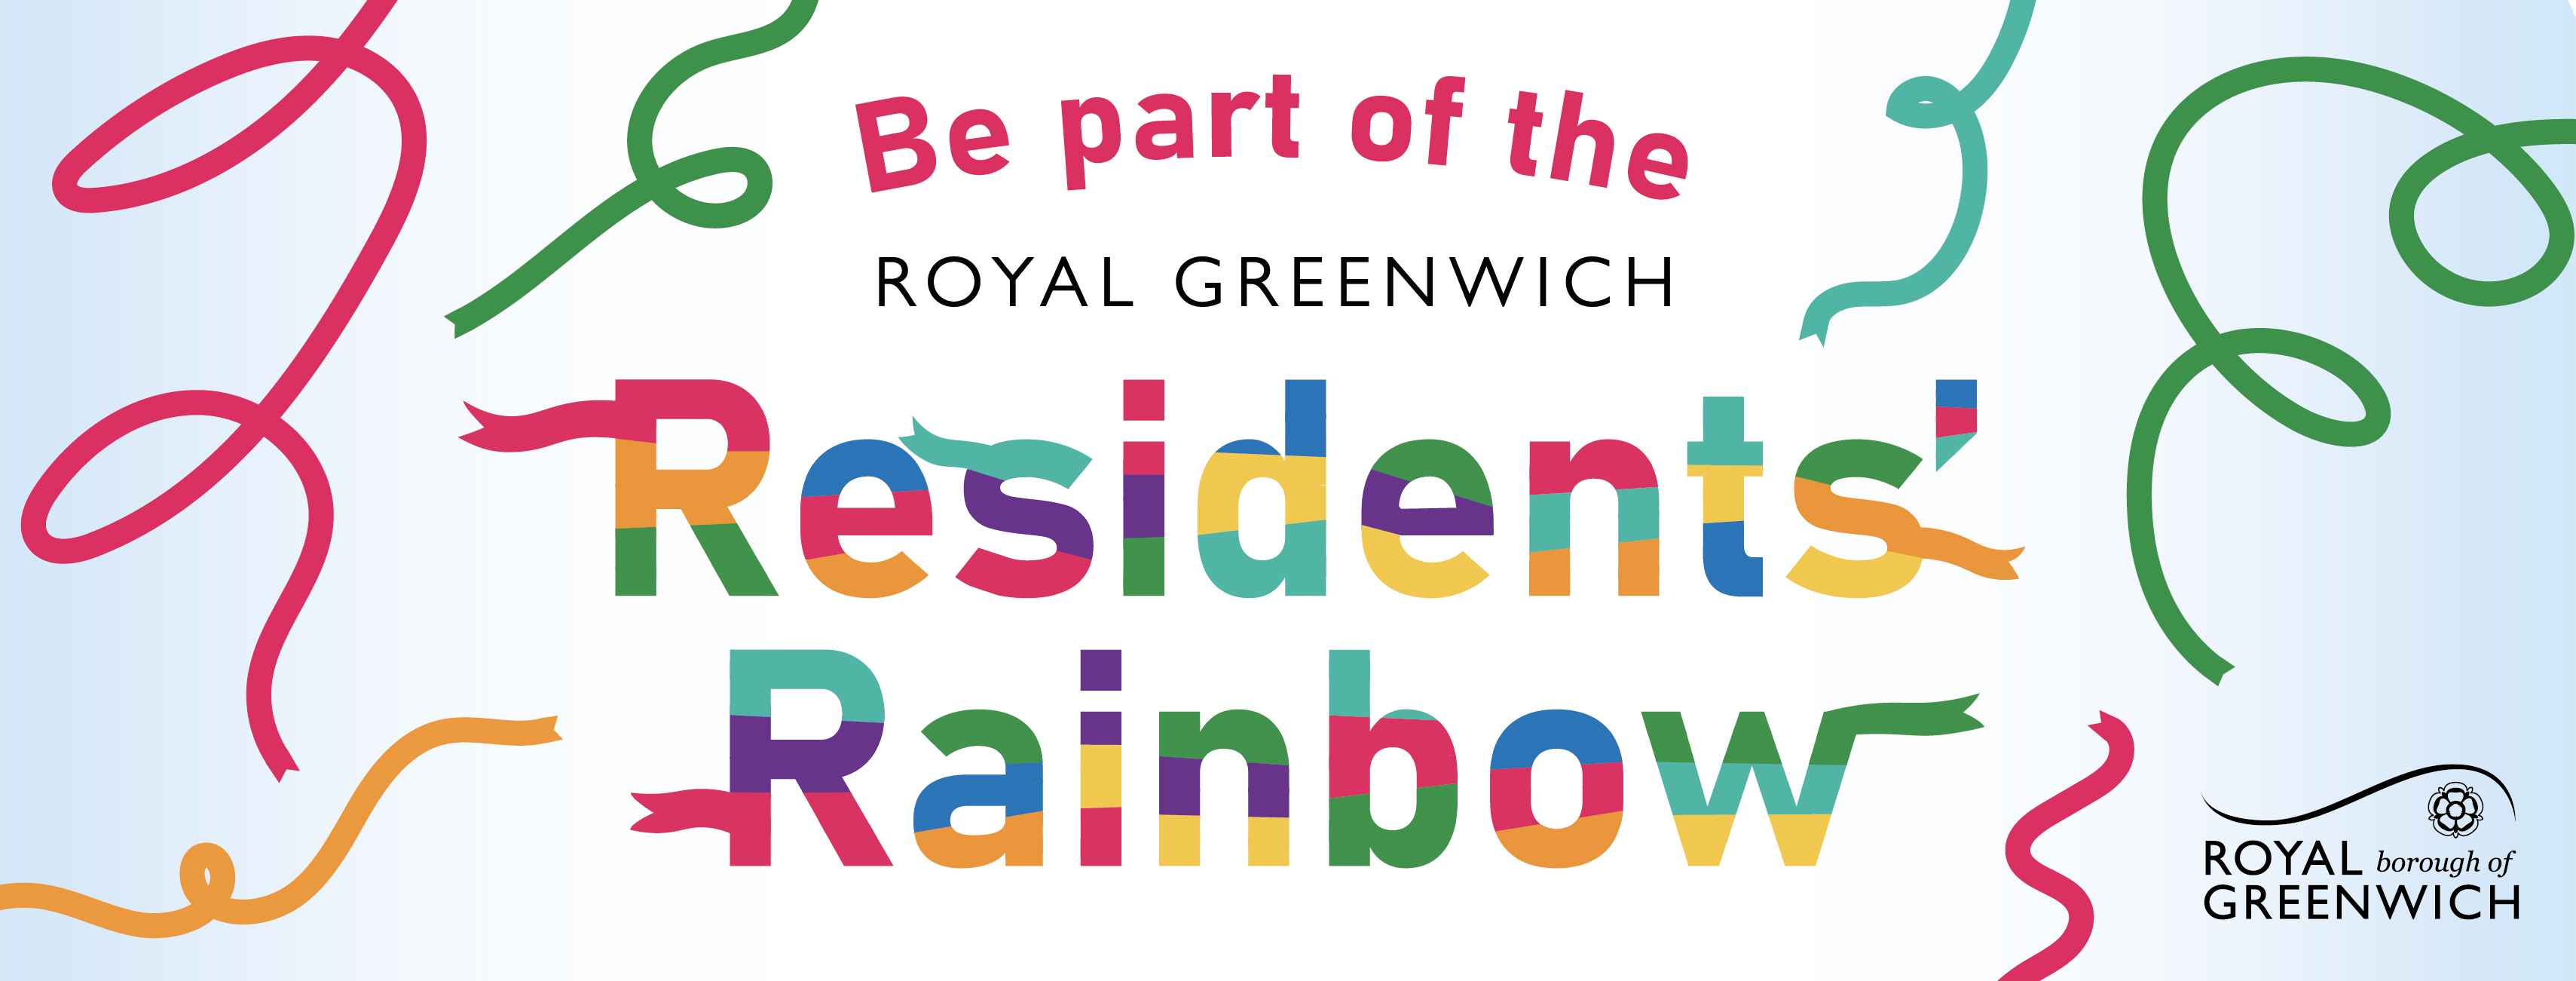 Be part of The Royal Greenwich Residents' Rainbow